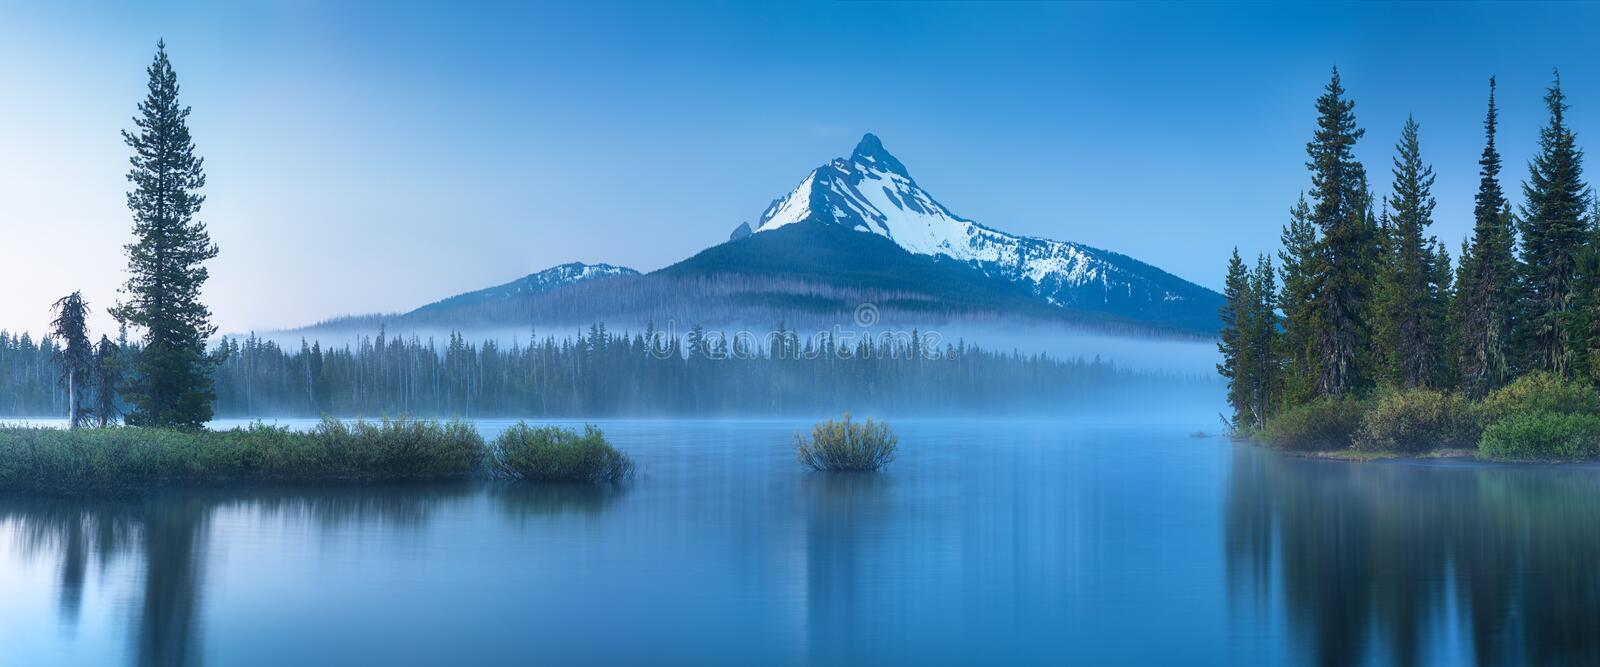 Amazing nature photography from Oregon with montains, lake, trees. Beautiful reflection in water. stock image